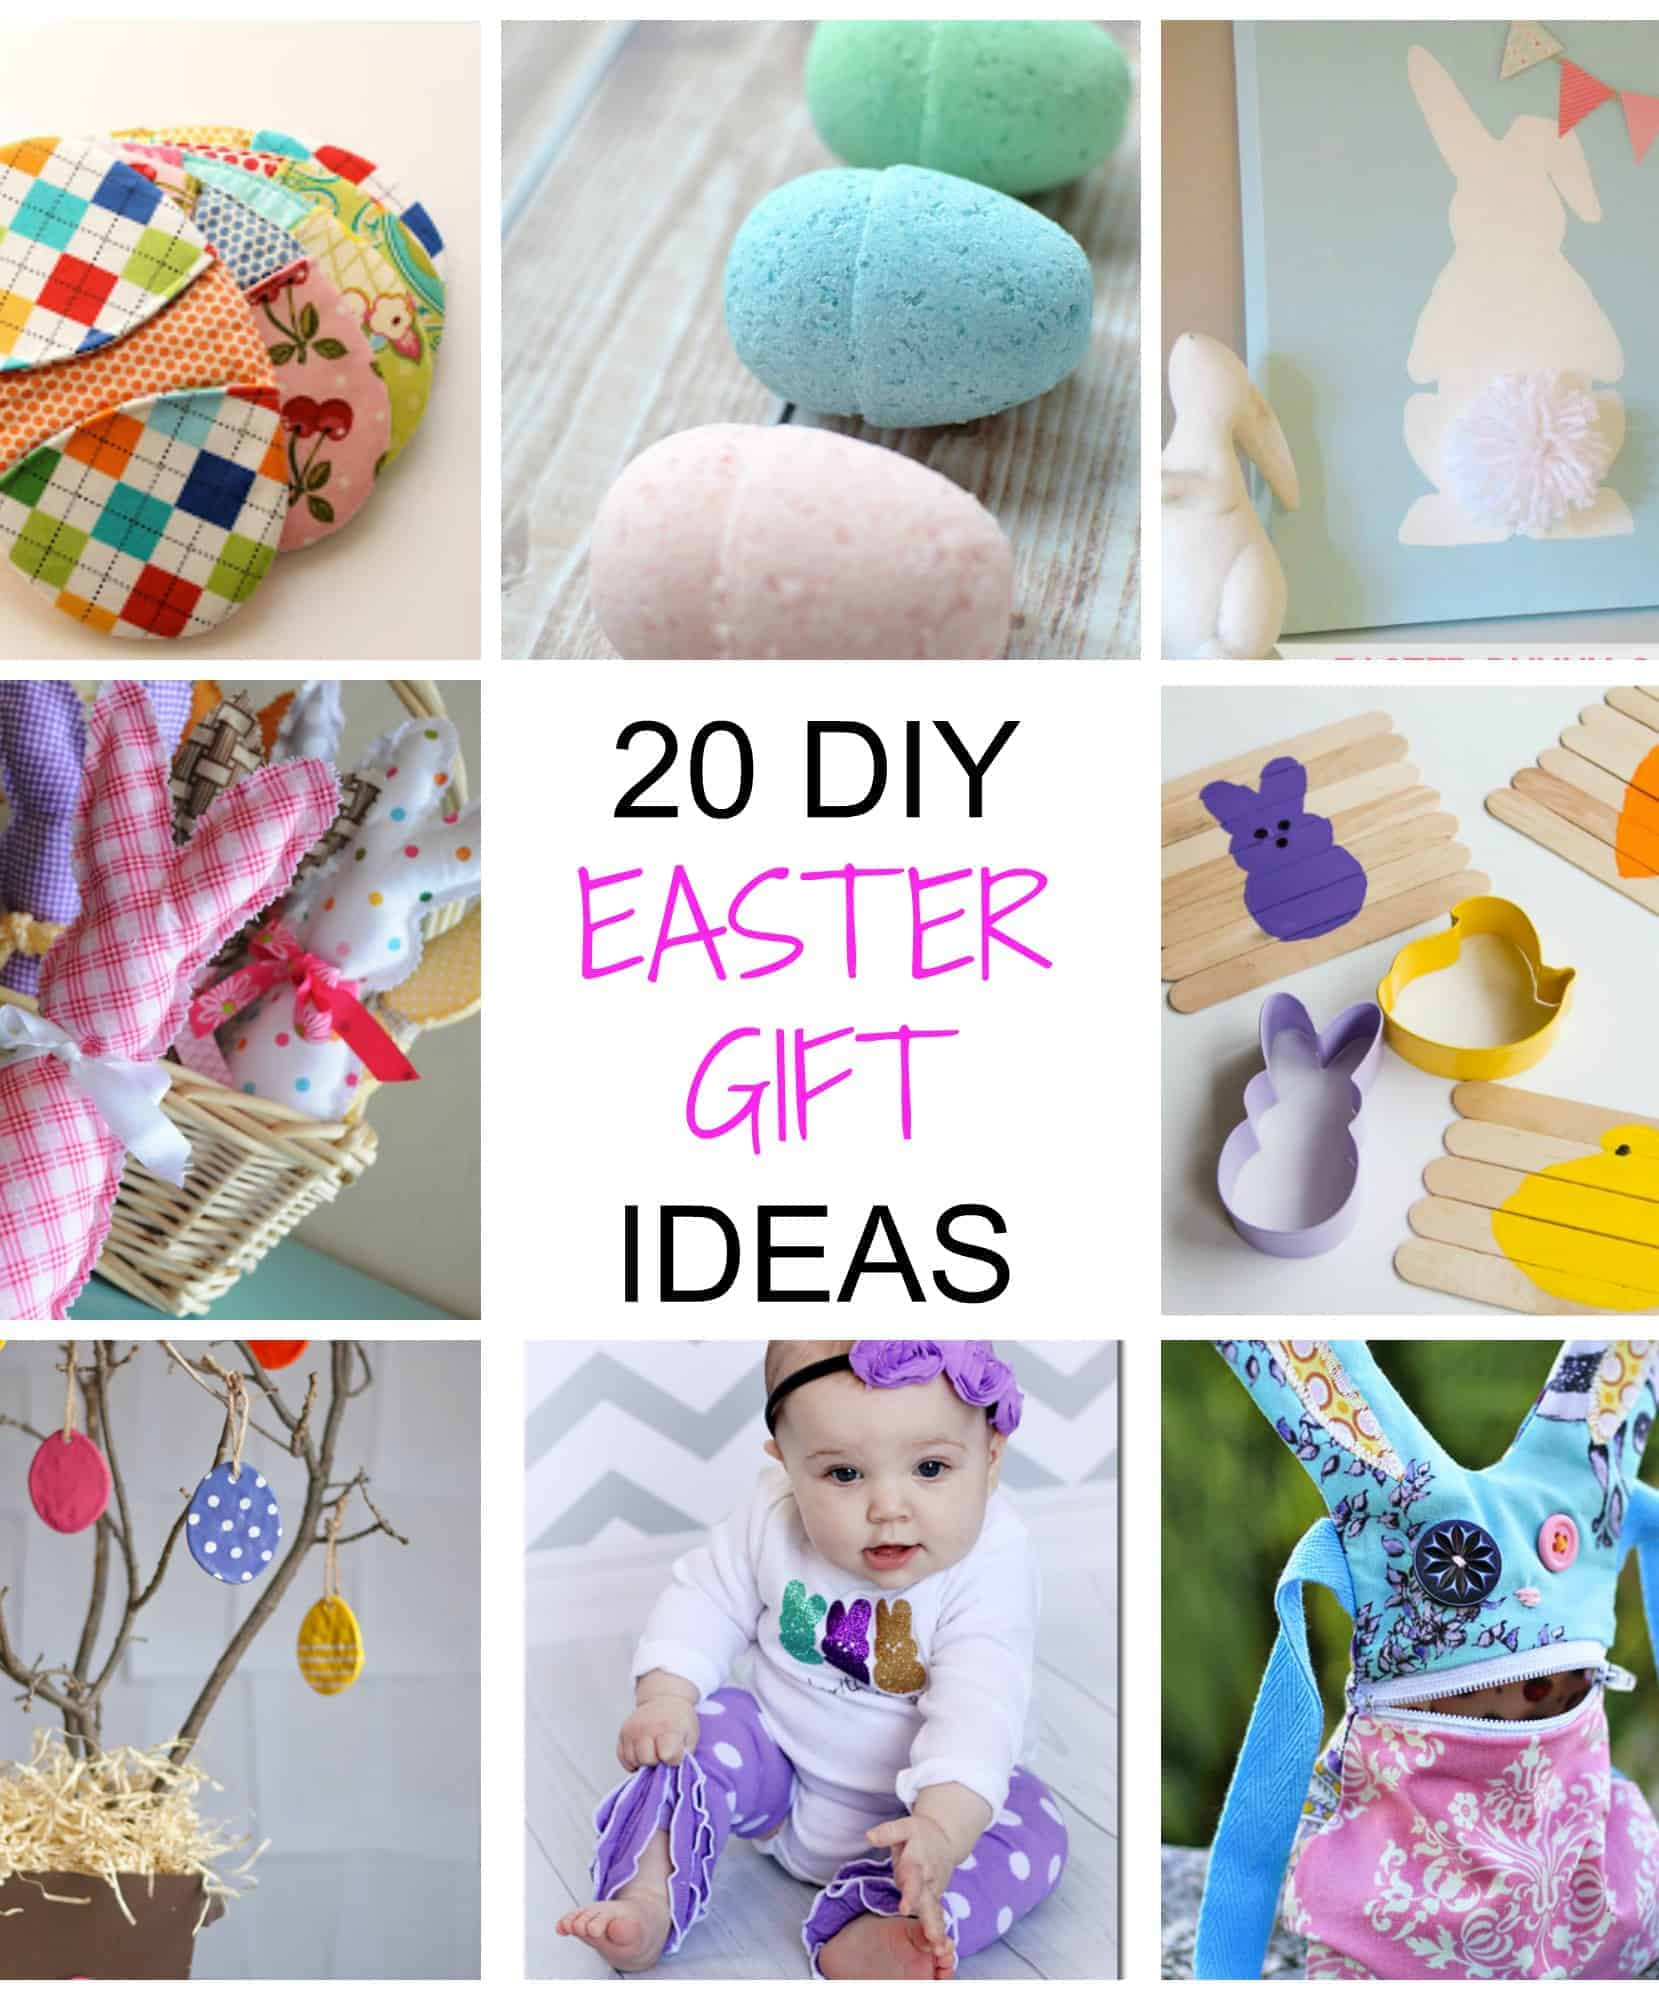 20 non chocolate diy easter gifts simplify create inspire negle Gallery